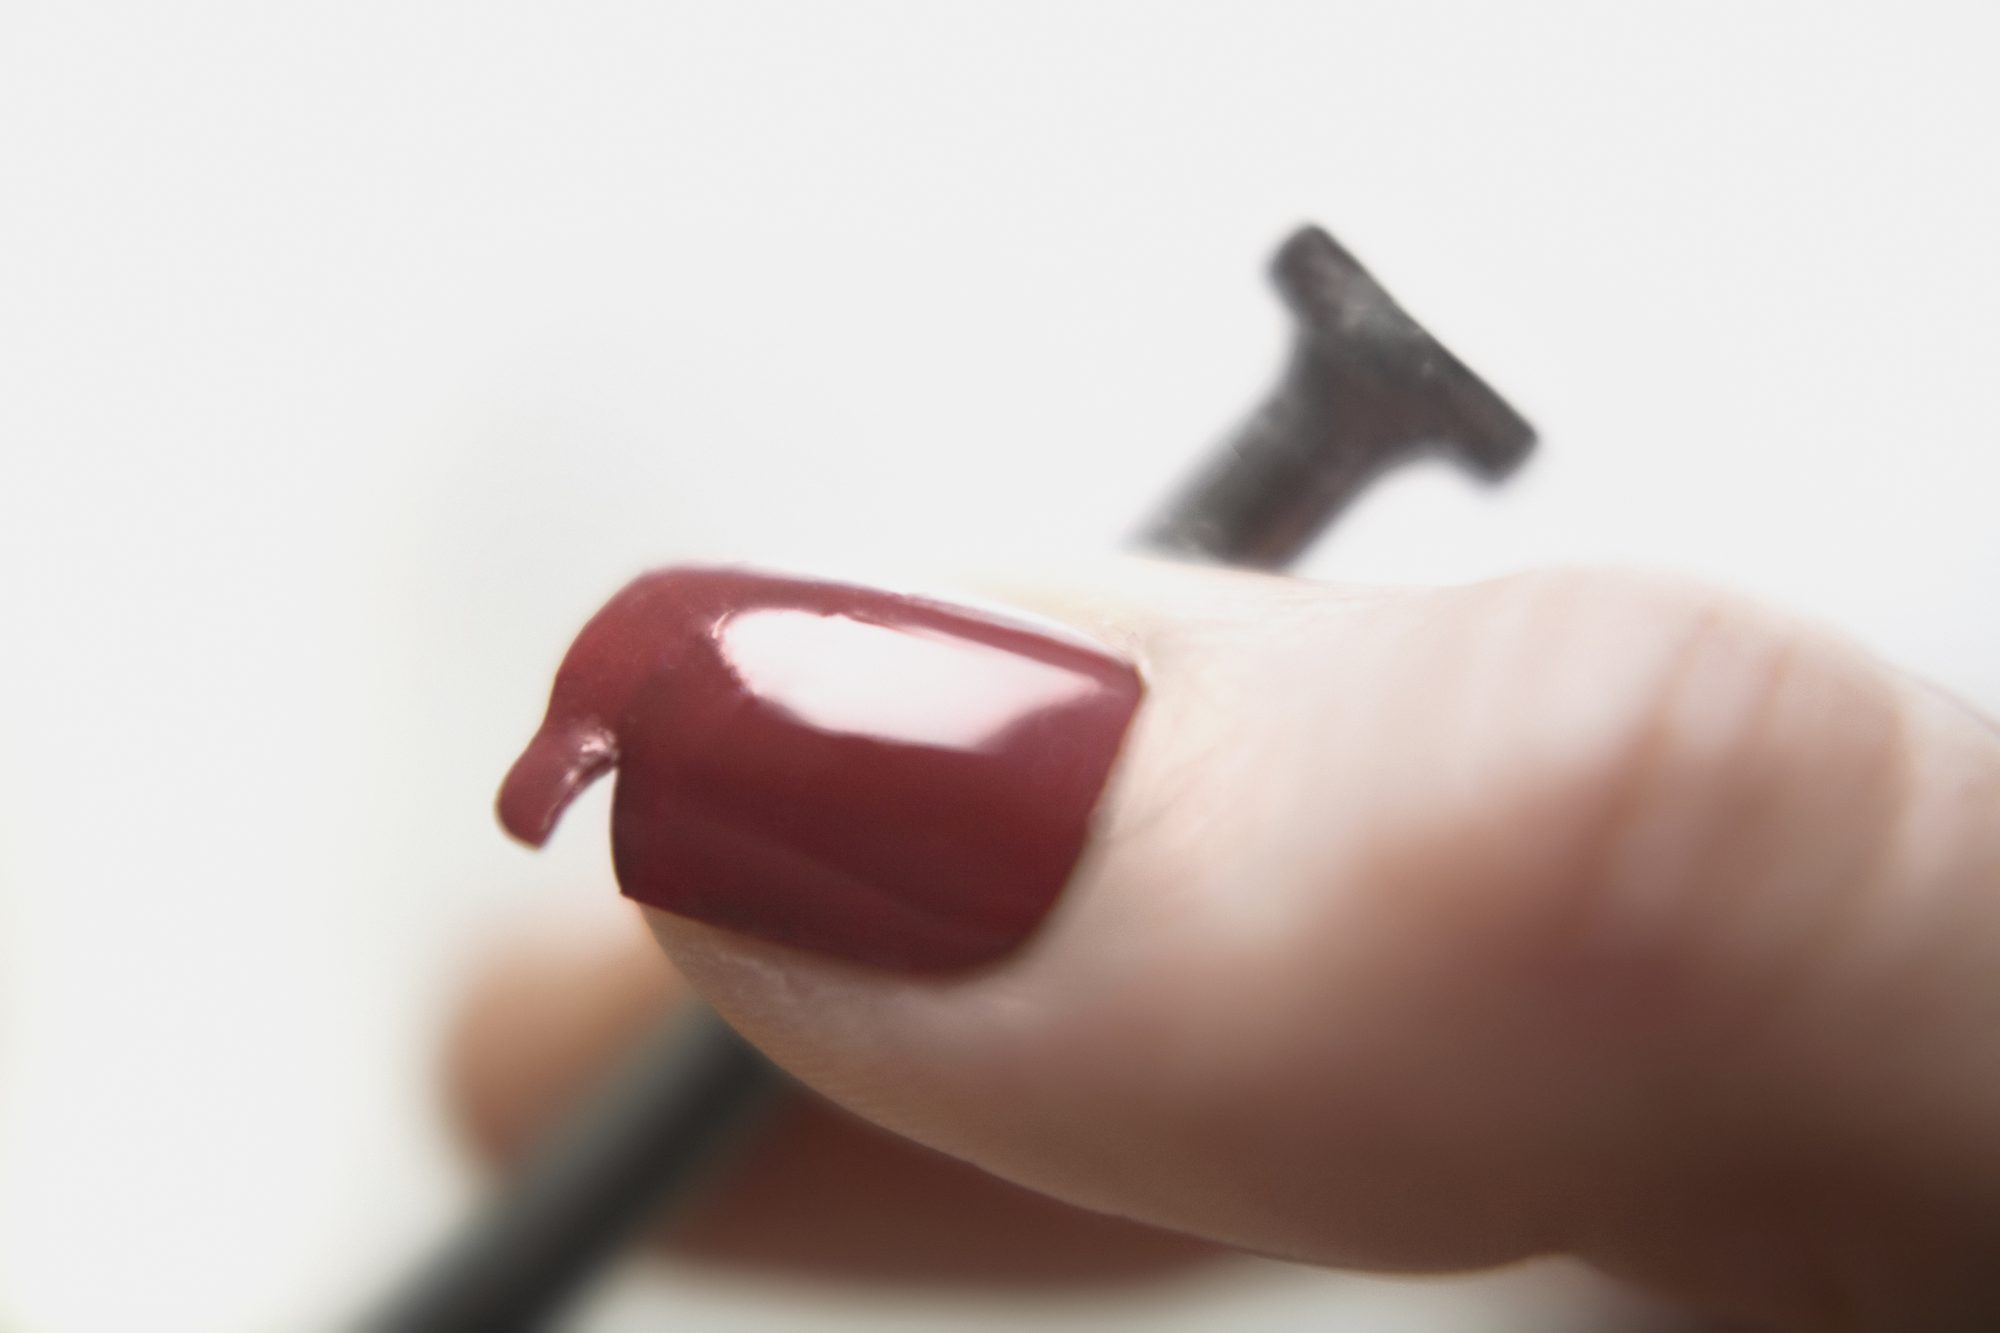 How To Fix A Broken Nail With A Tea Bag Southern Living